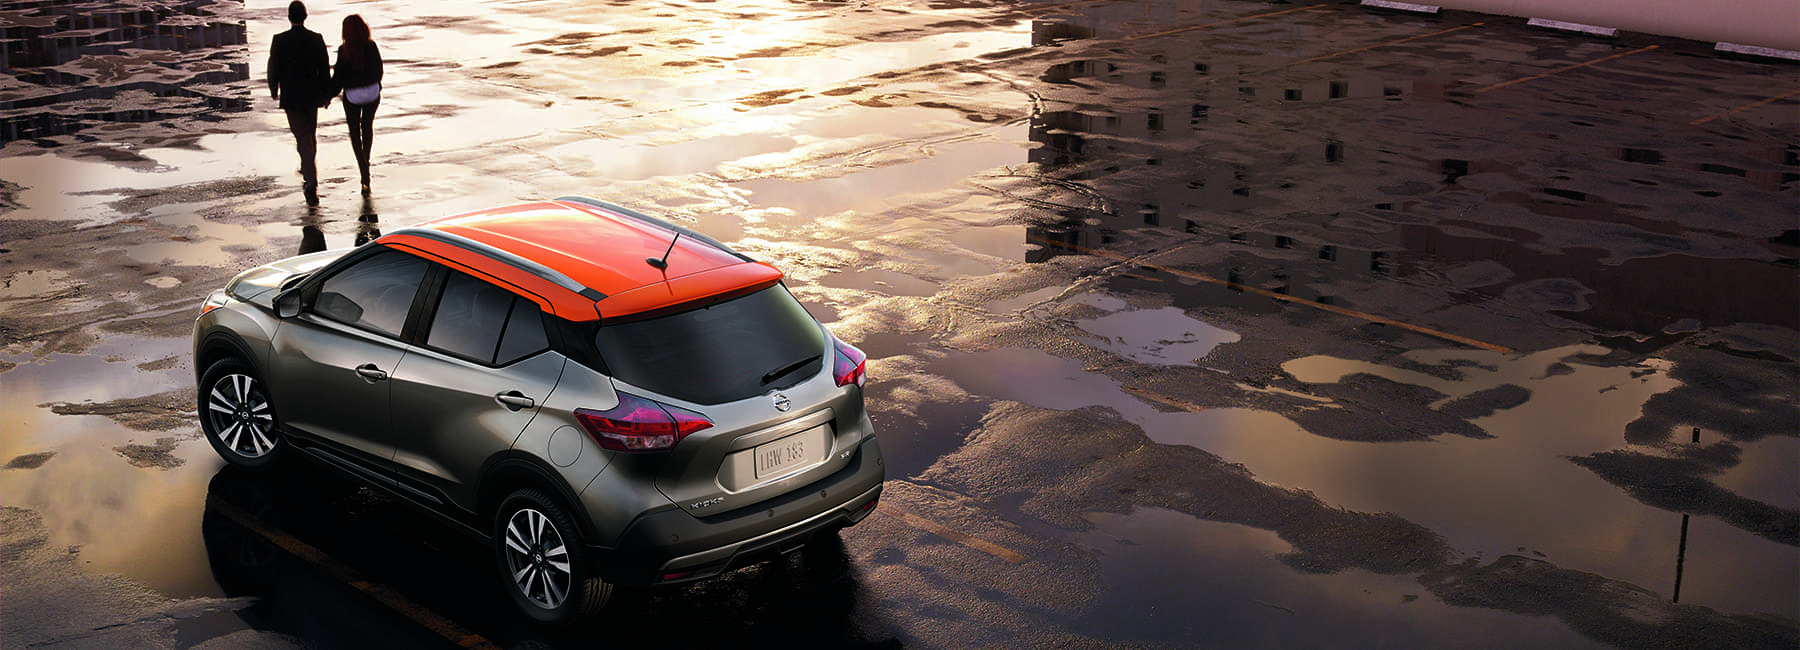 Couple walking away from 2020 Nissan Kicks Exterior as sun is setting